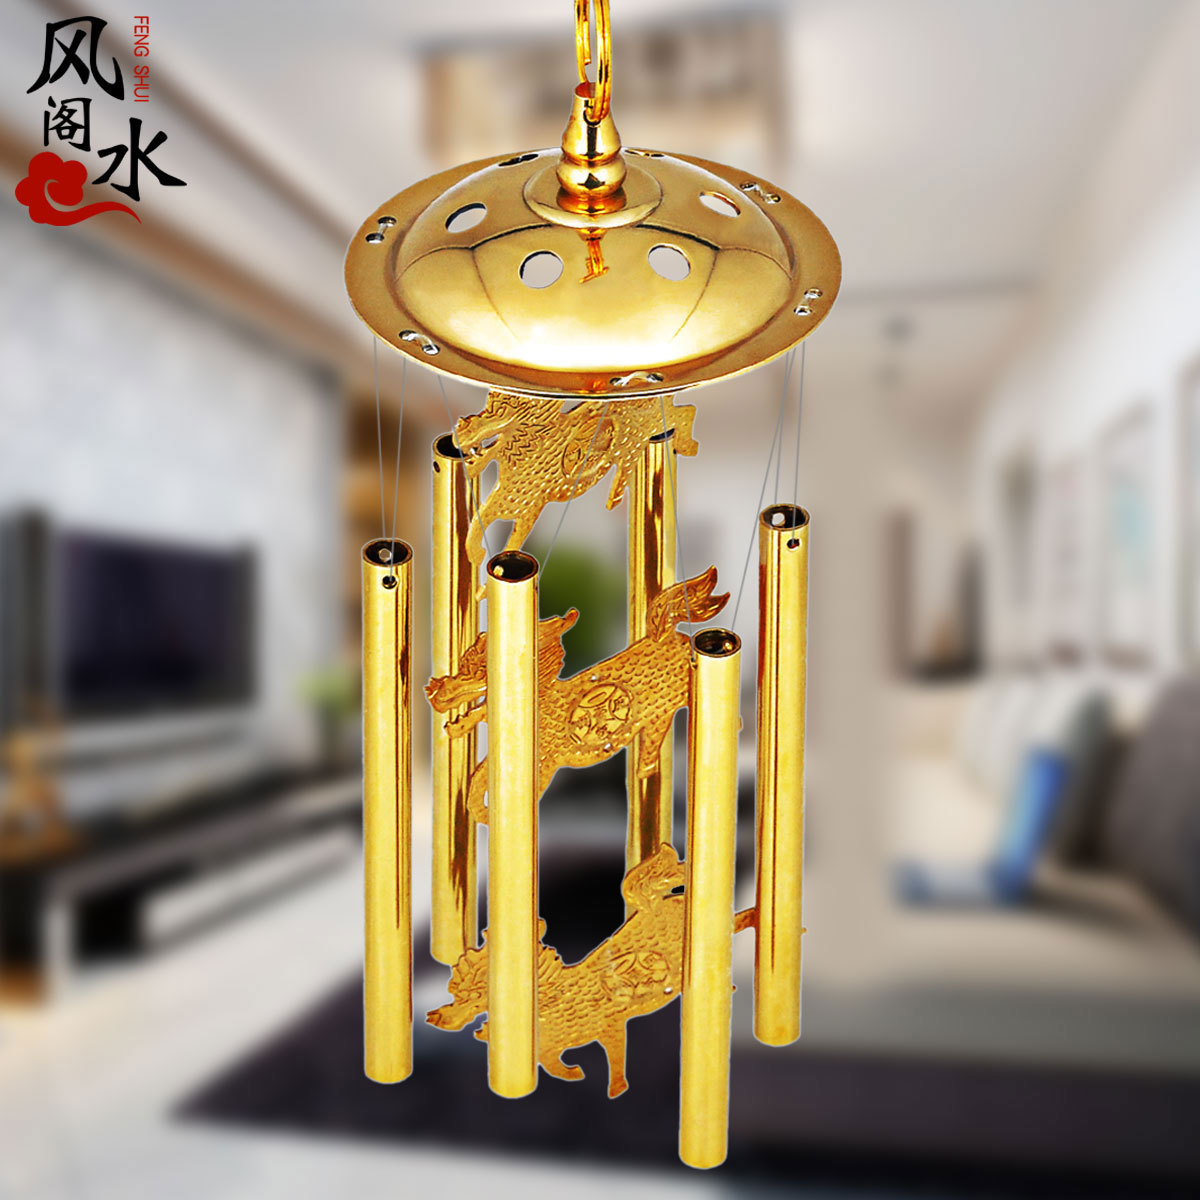 Feng Shui Pavilion Pure Copper Wind Chimes Door Hanging Decoration Six Tube  Unicorn Metal Brass Pan Home Decorations Gift